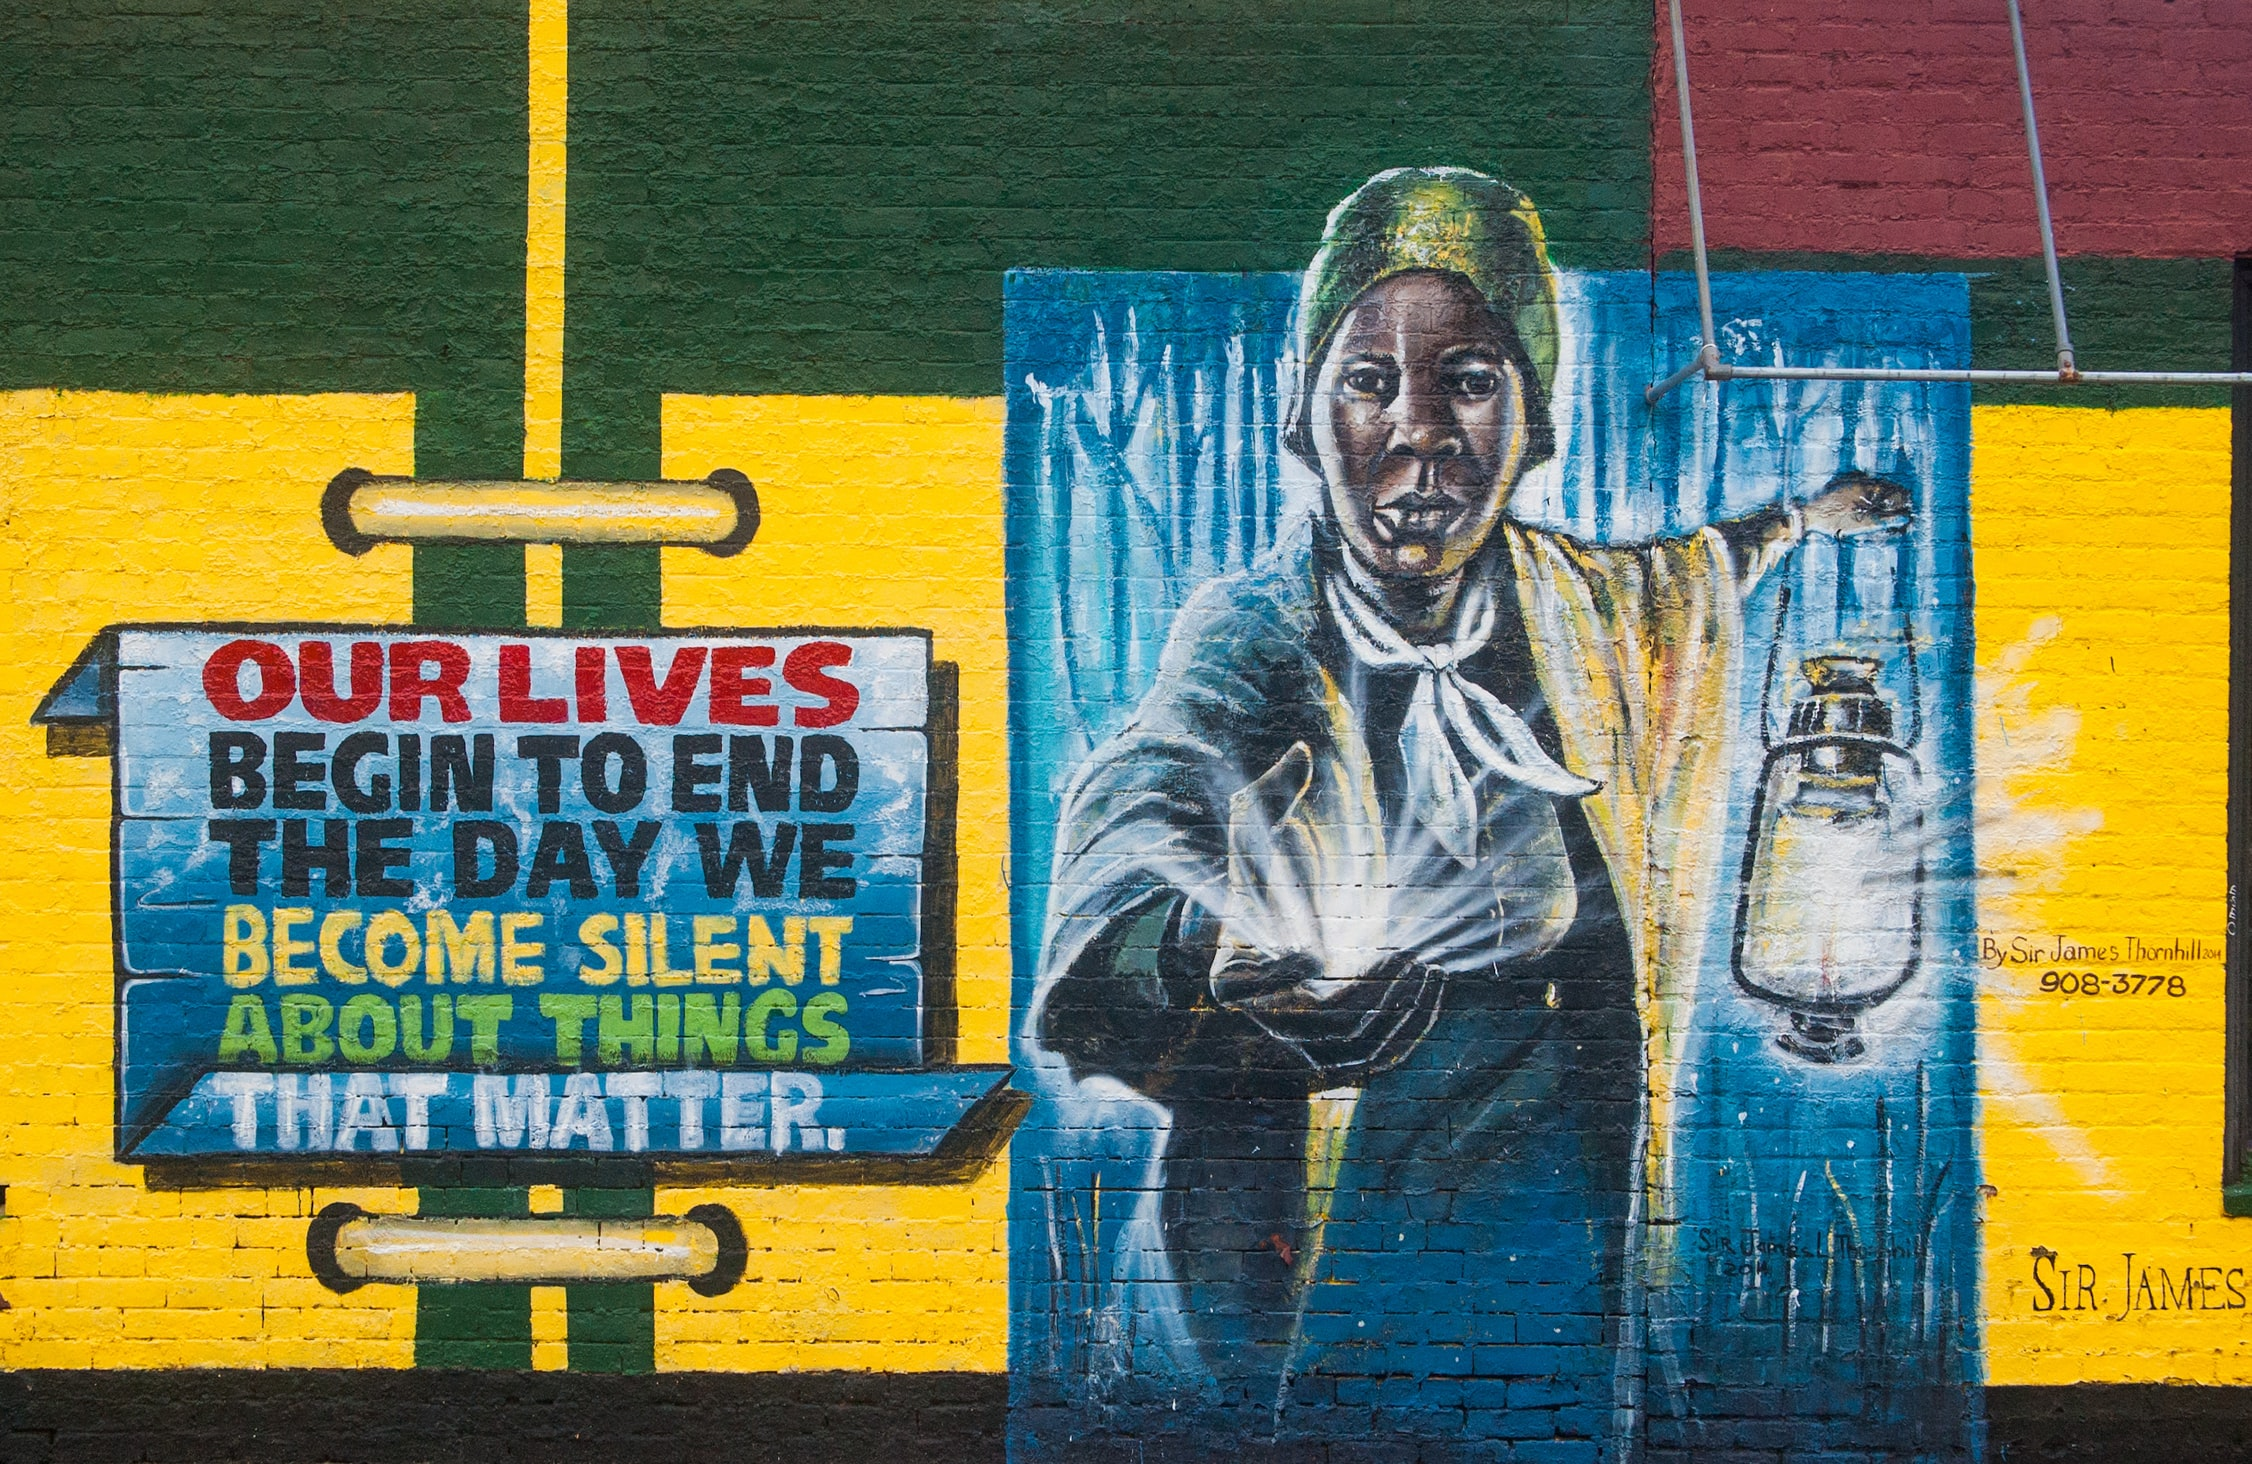 """Mural which reads """"Our lives begin to end the day we become silent about things that matter."""""""